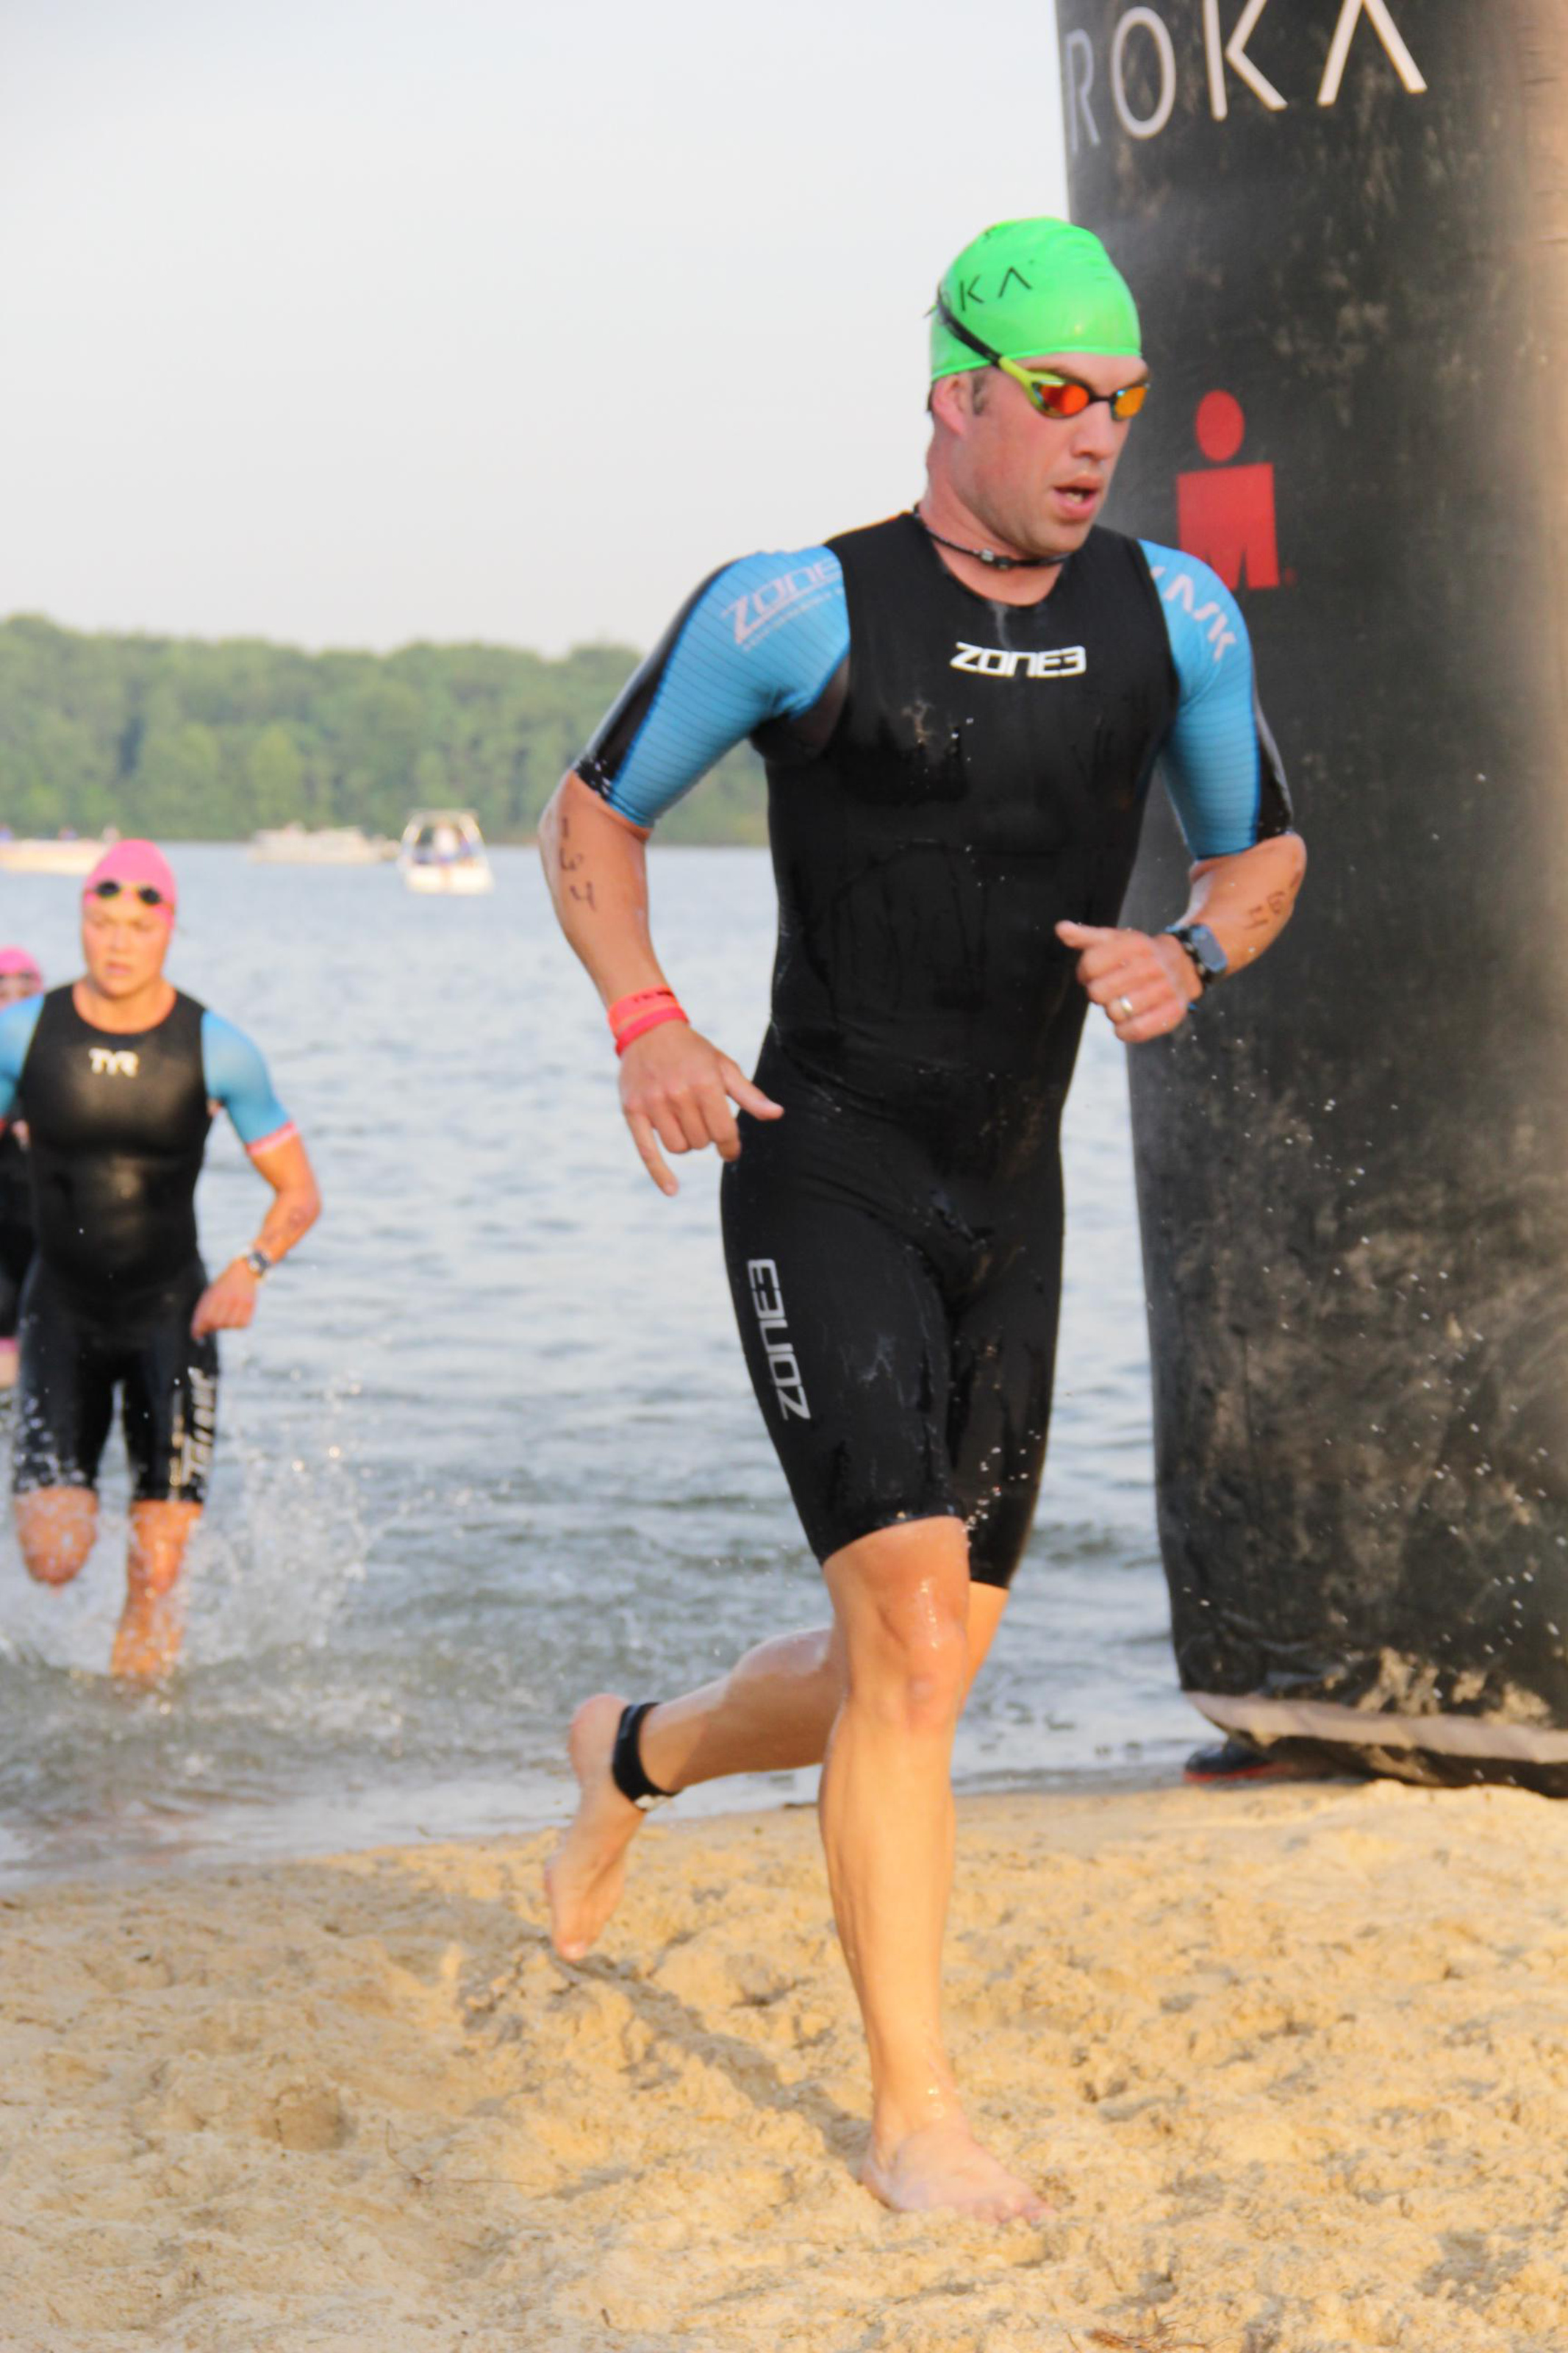 Coach_Terry_Wilson_Pursuit_of_The_Perfect_Race_IRONMAN_Muncie_70.3_Jason_Tucker.JPG